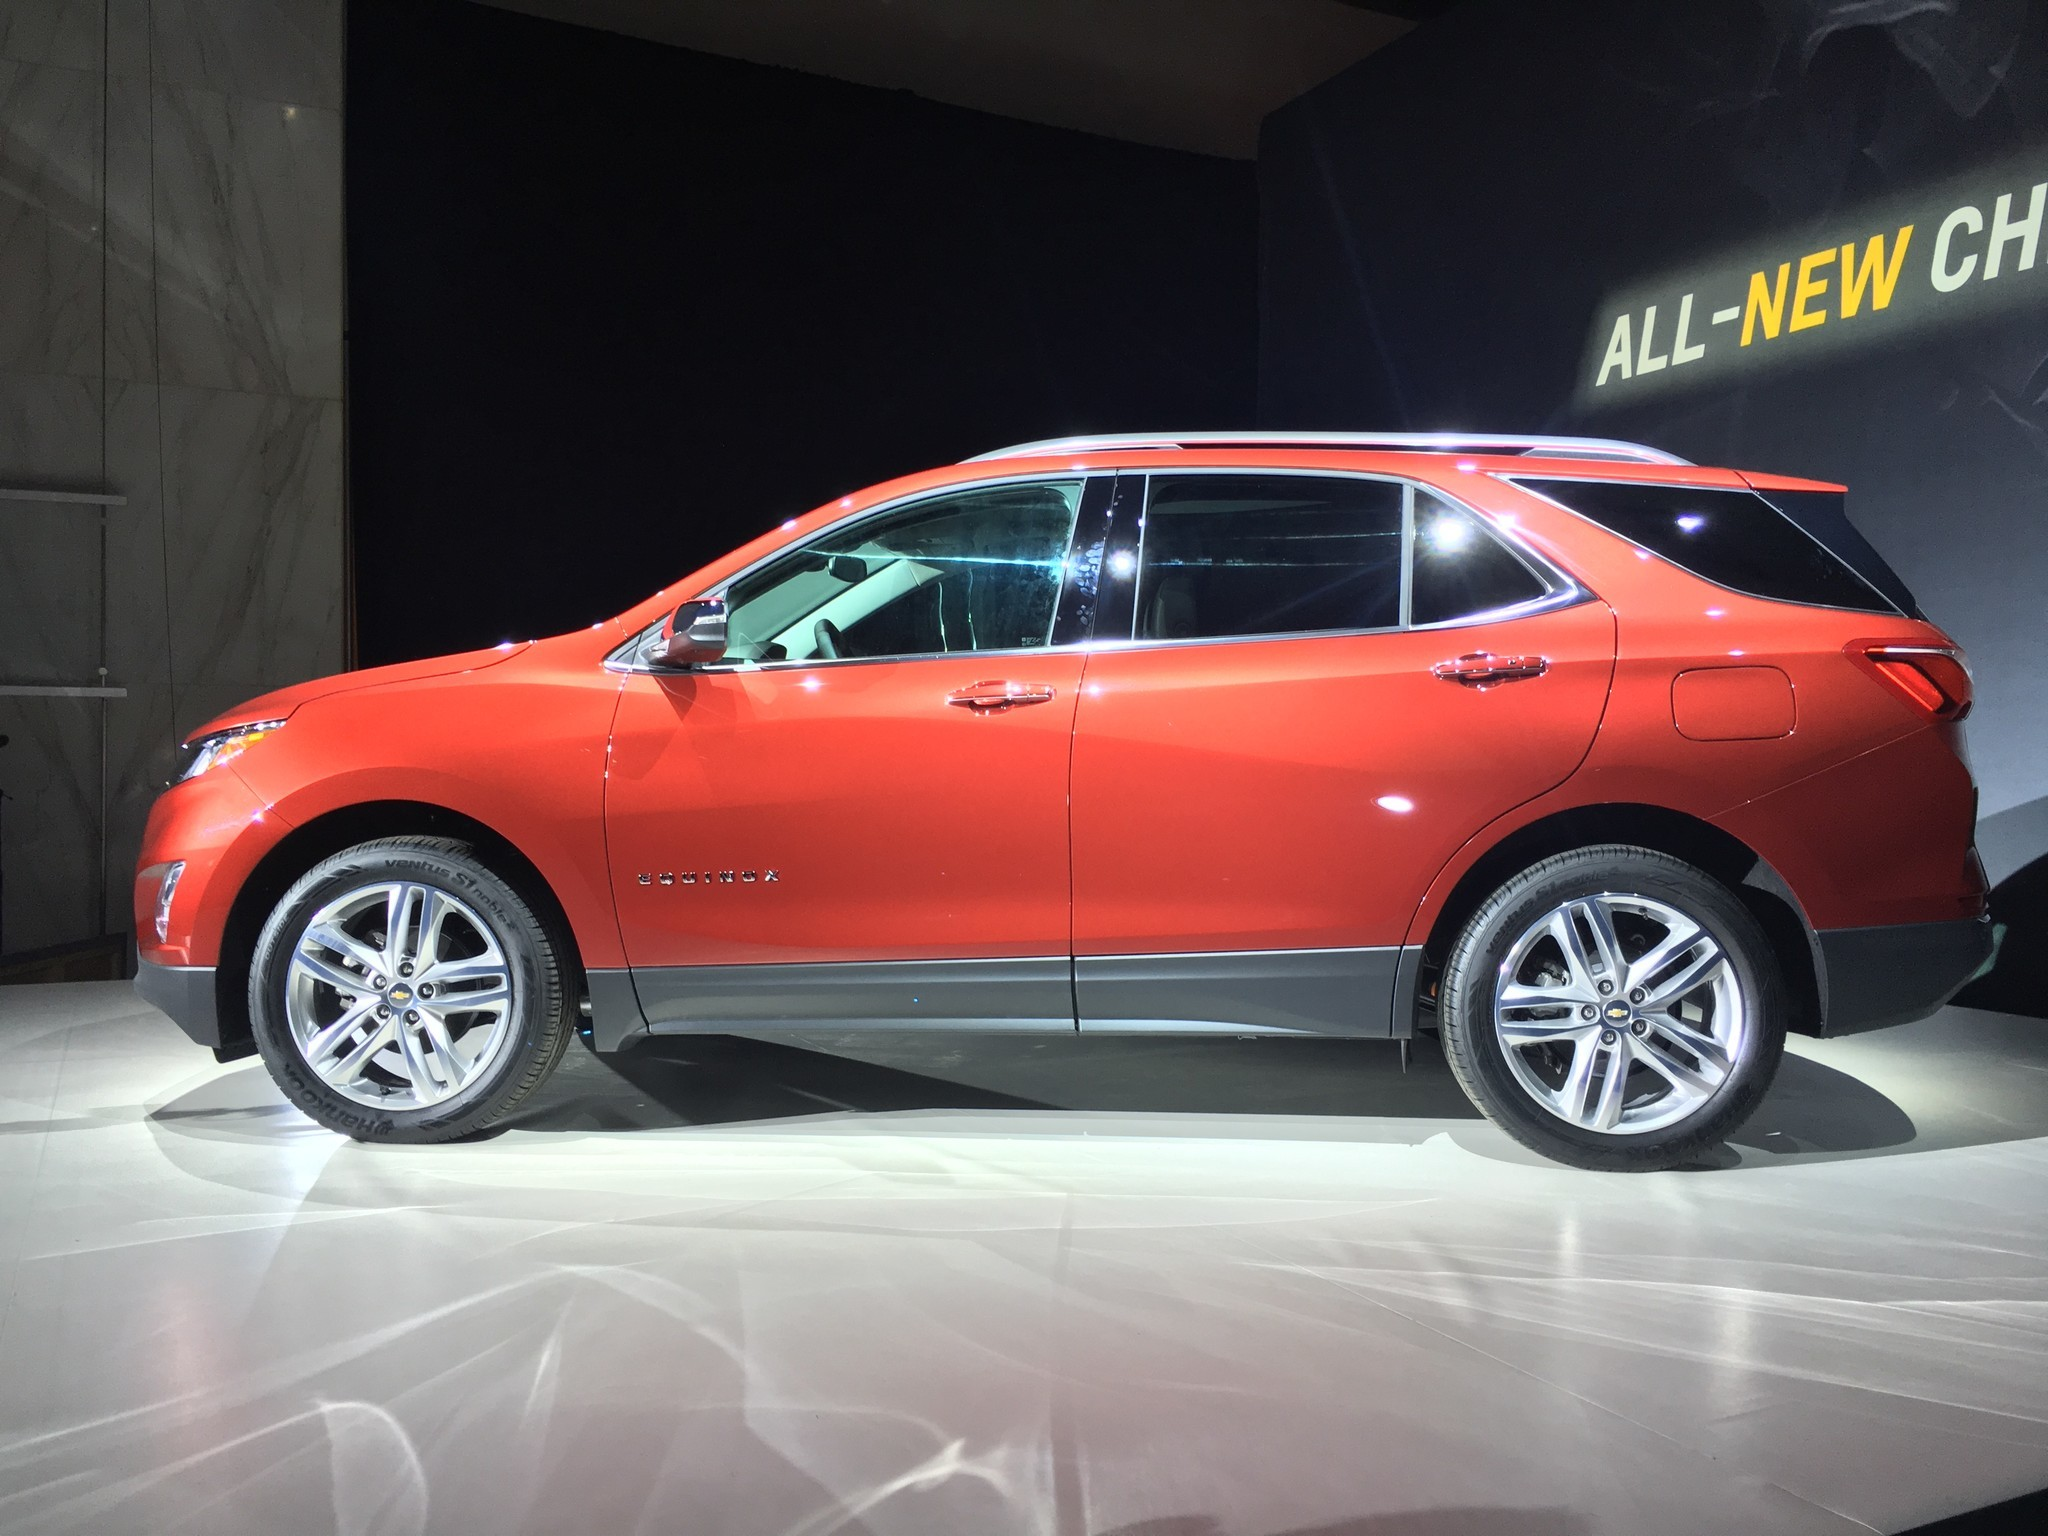 vehiclesearchresults for certified wv vehicle sistersville chevrolet vehicles sale in equinox photo